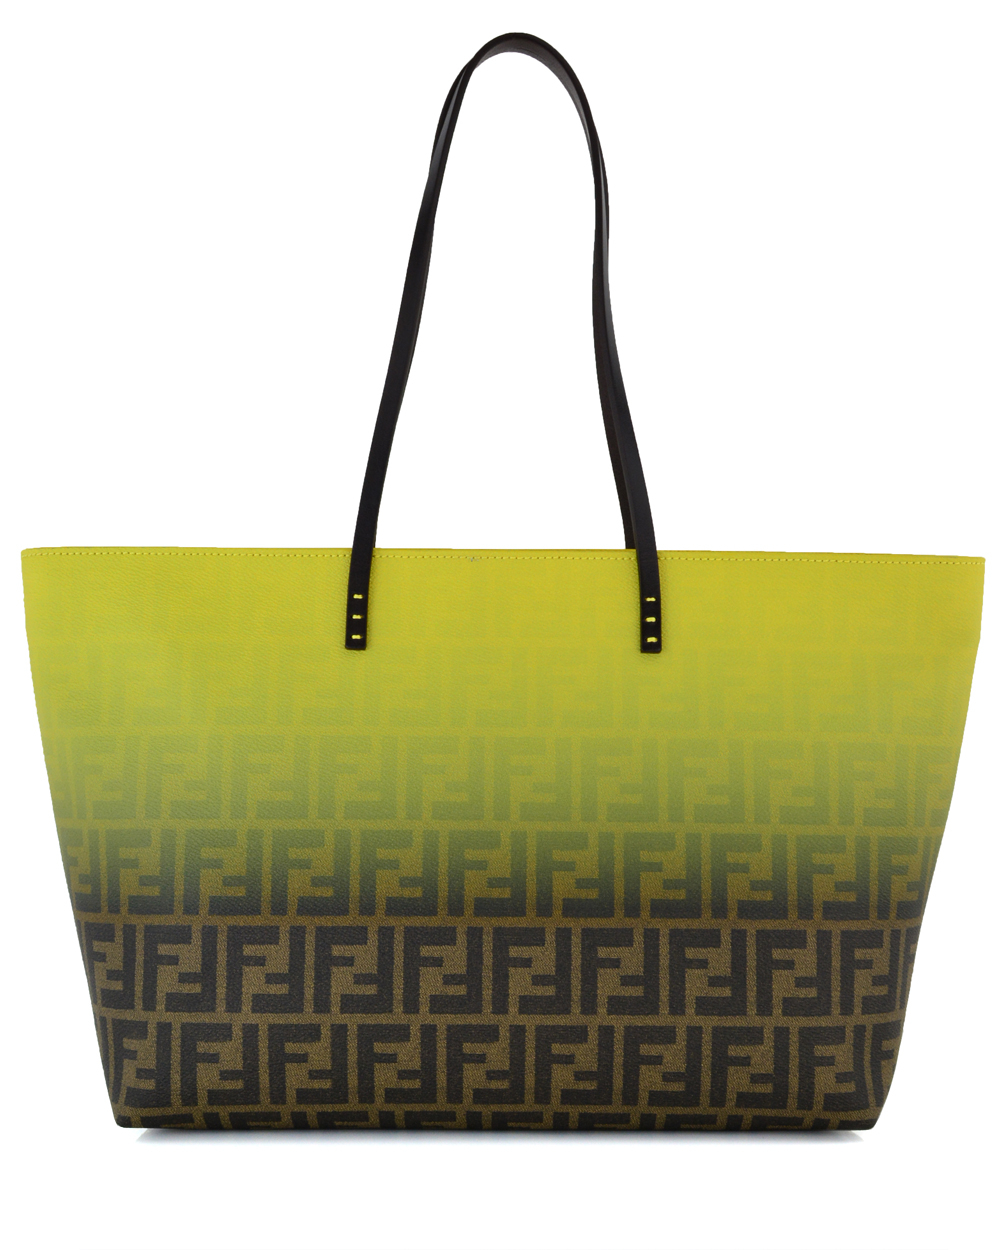 Lyst - Fendi Yellow Ombre Zucca Tote in Yellow caae65c430ffd